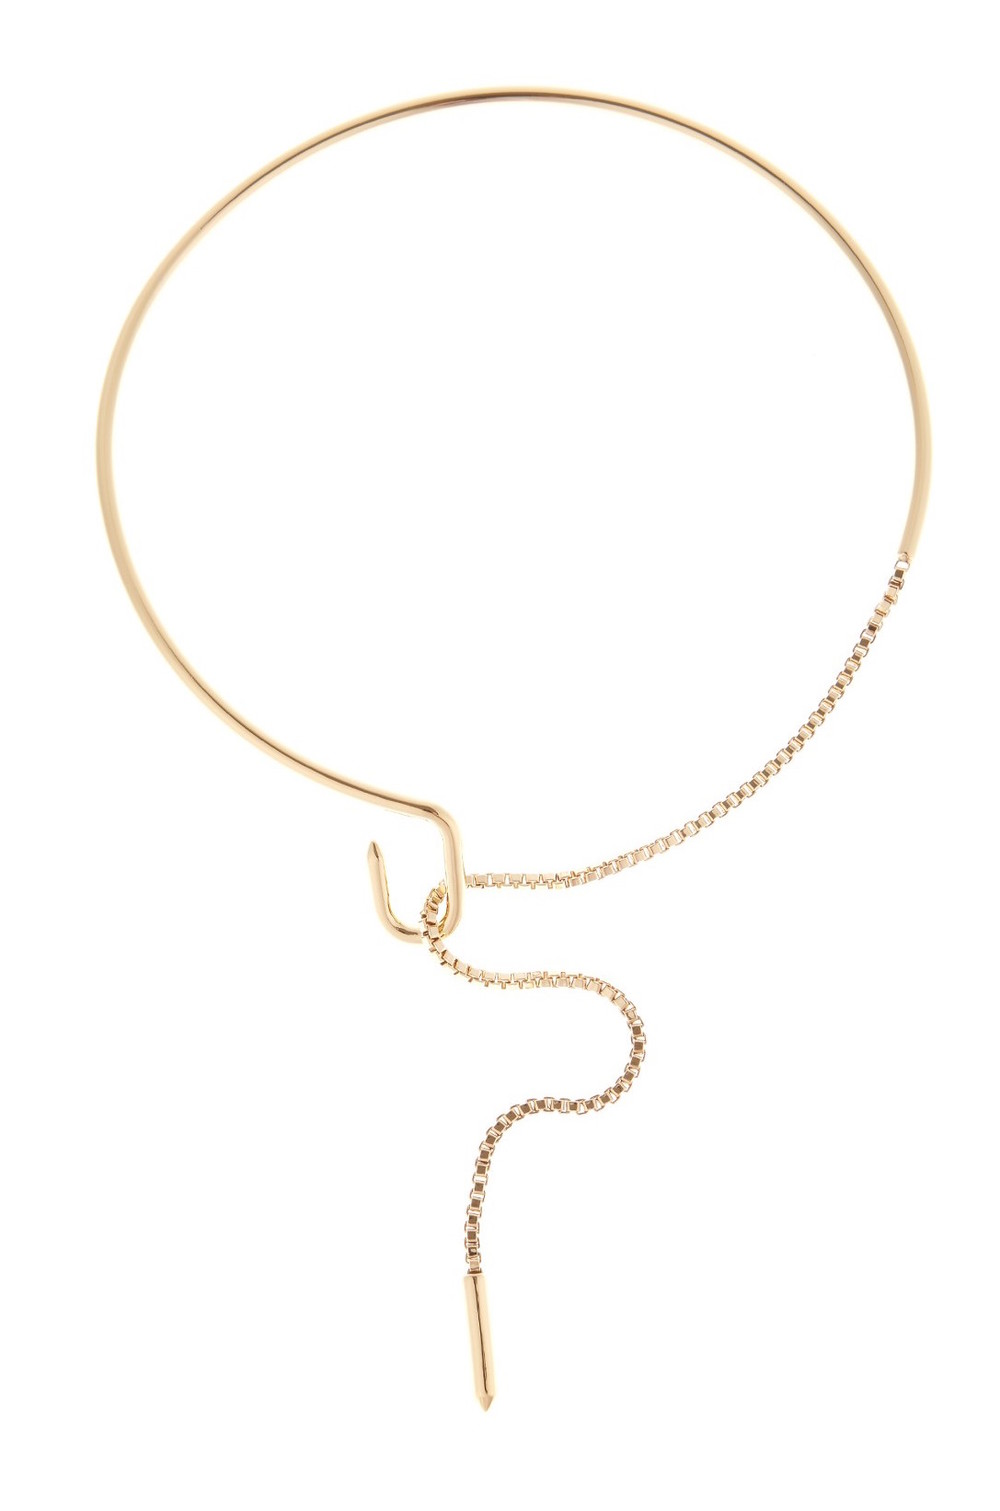 EDDIE BORGO 'ALLURE' GOLD PLATED CHOKER